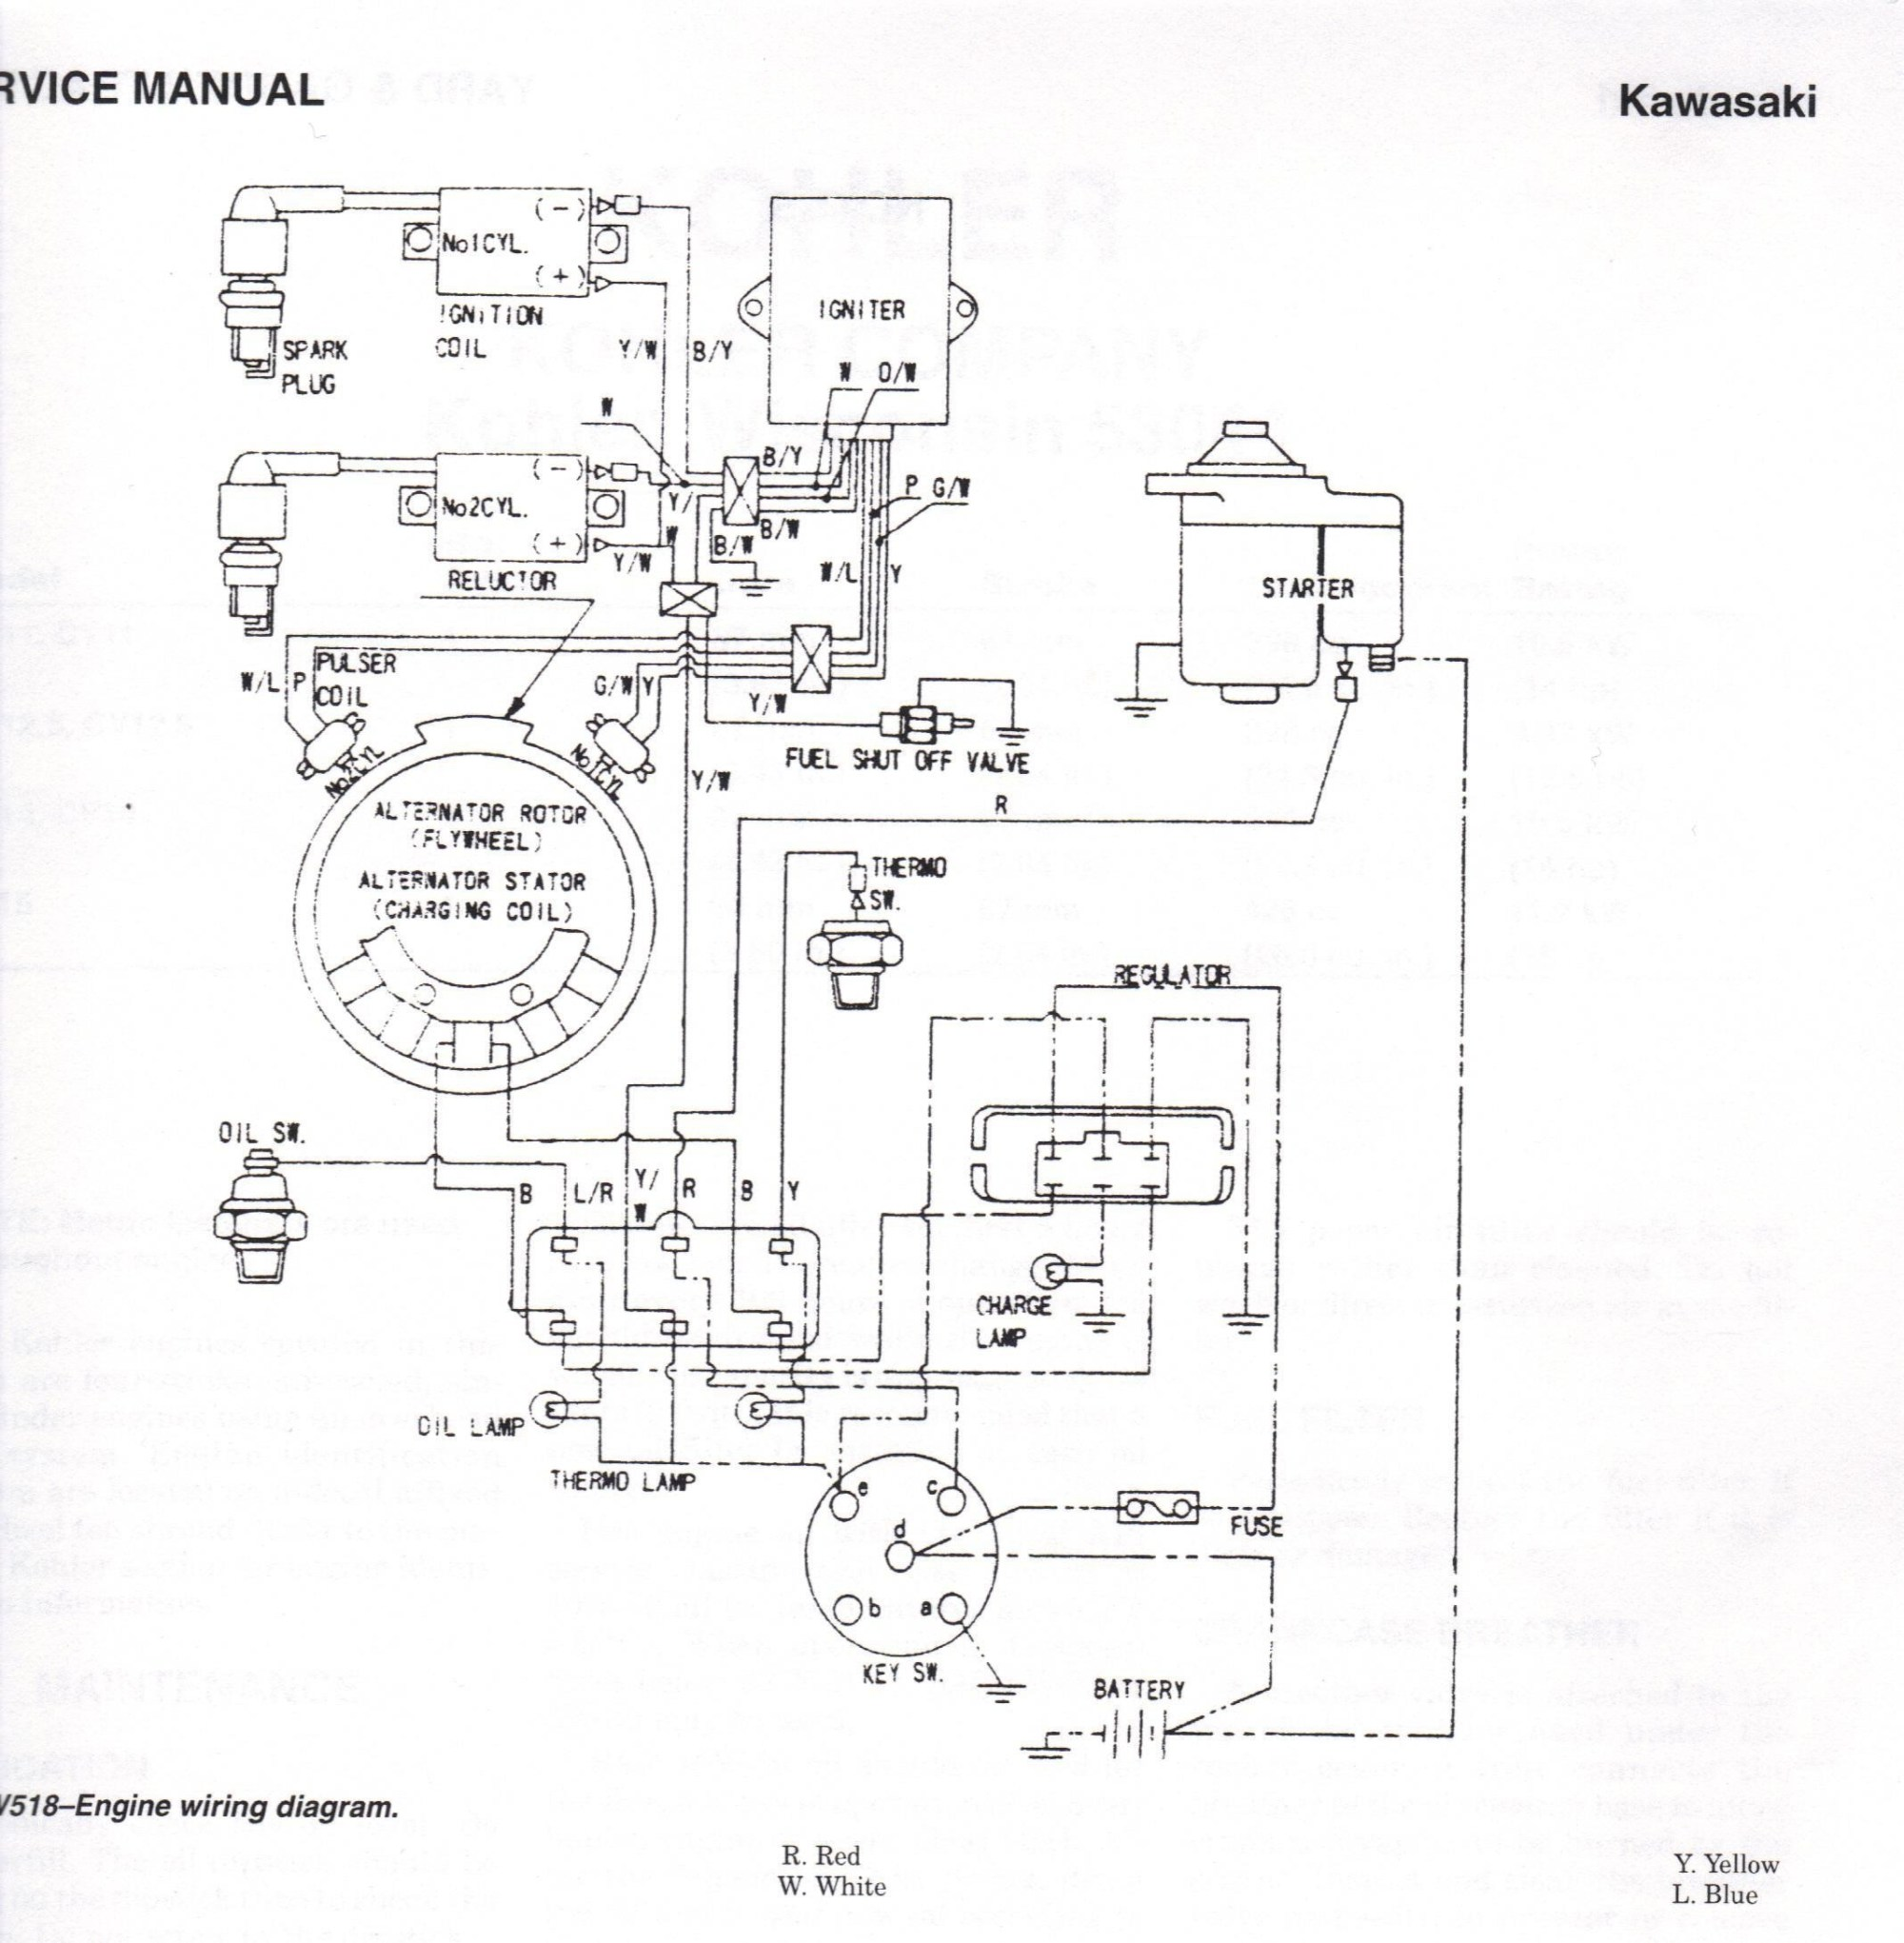 hight resolution of john deere 850 wiring harness diagram wiring diagramsjohn deere 250 wiring diagram wiring library mercury 850